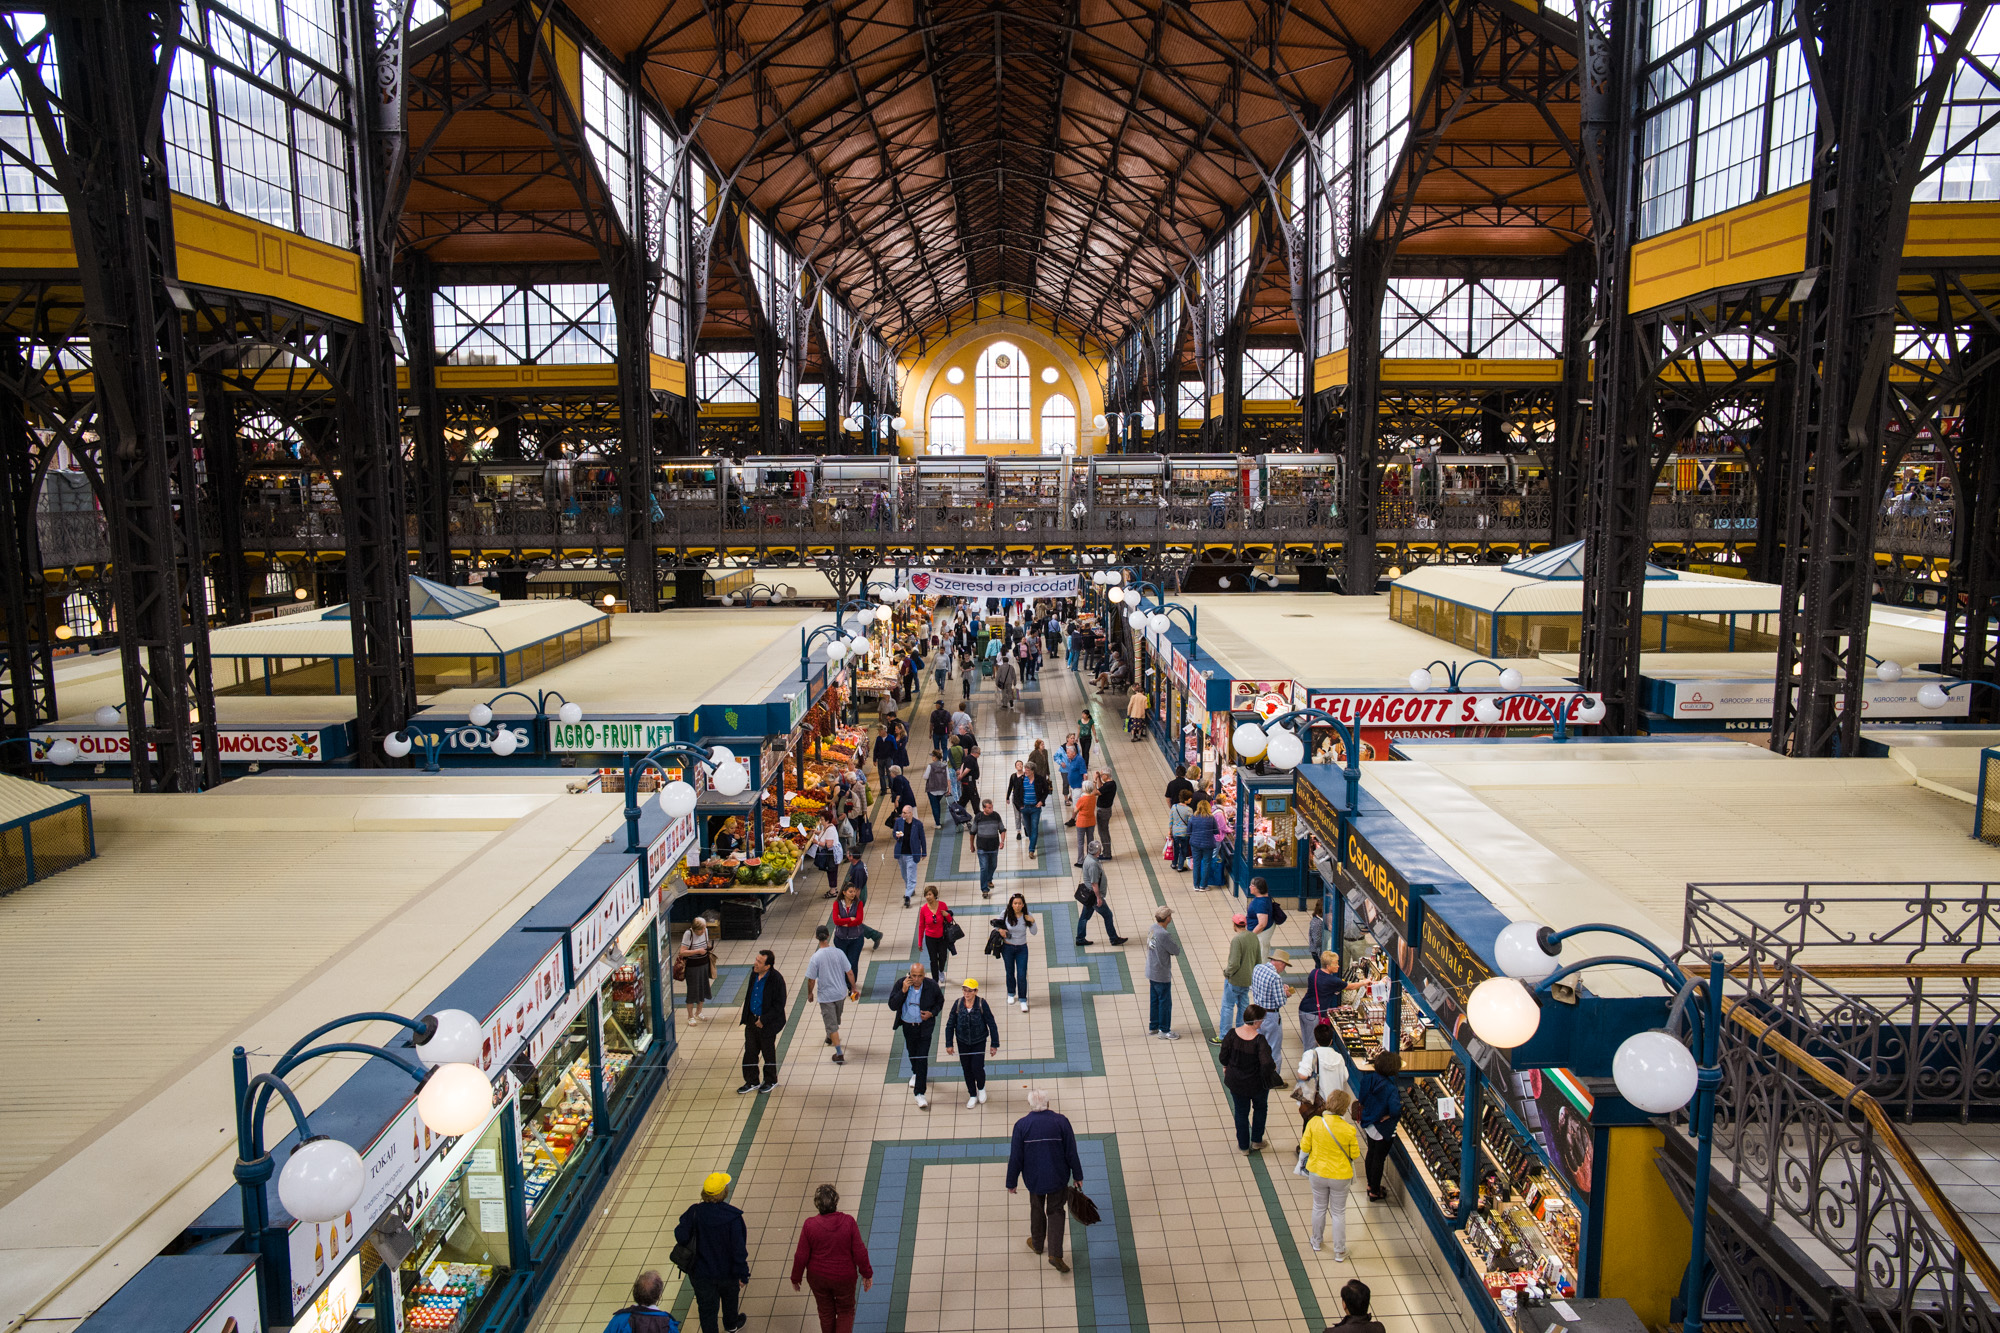 The Central Market of Budapest